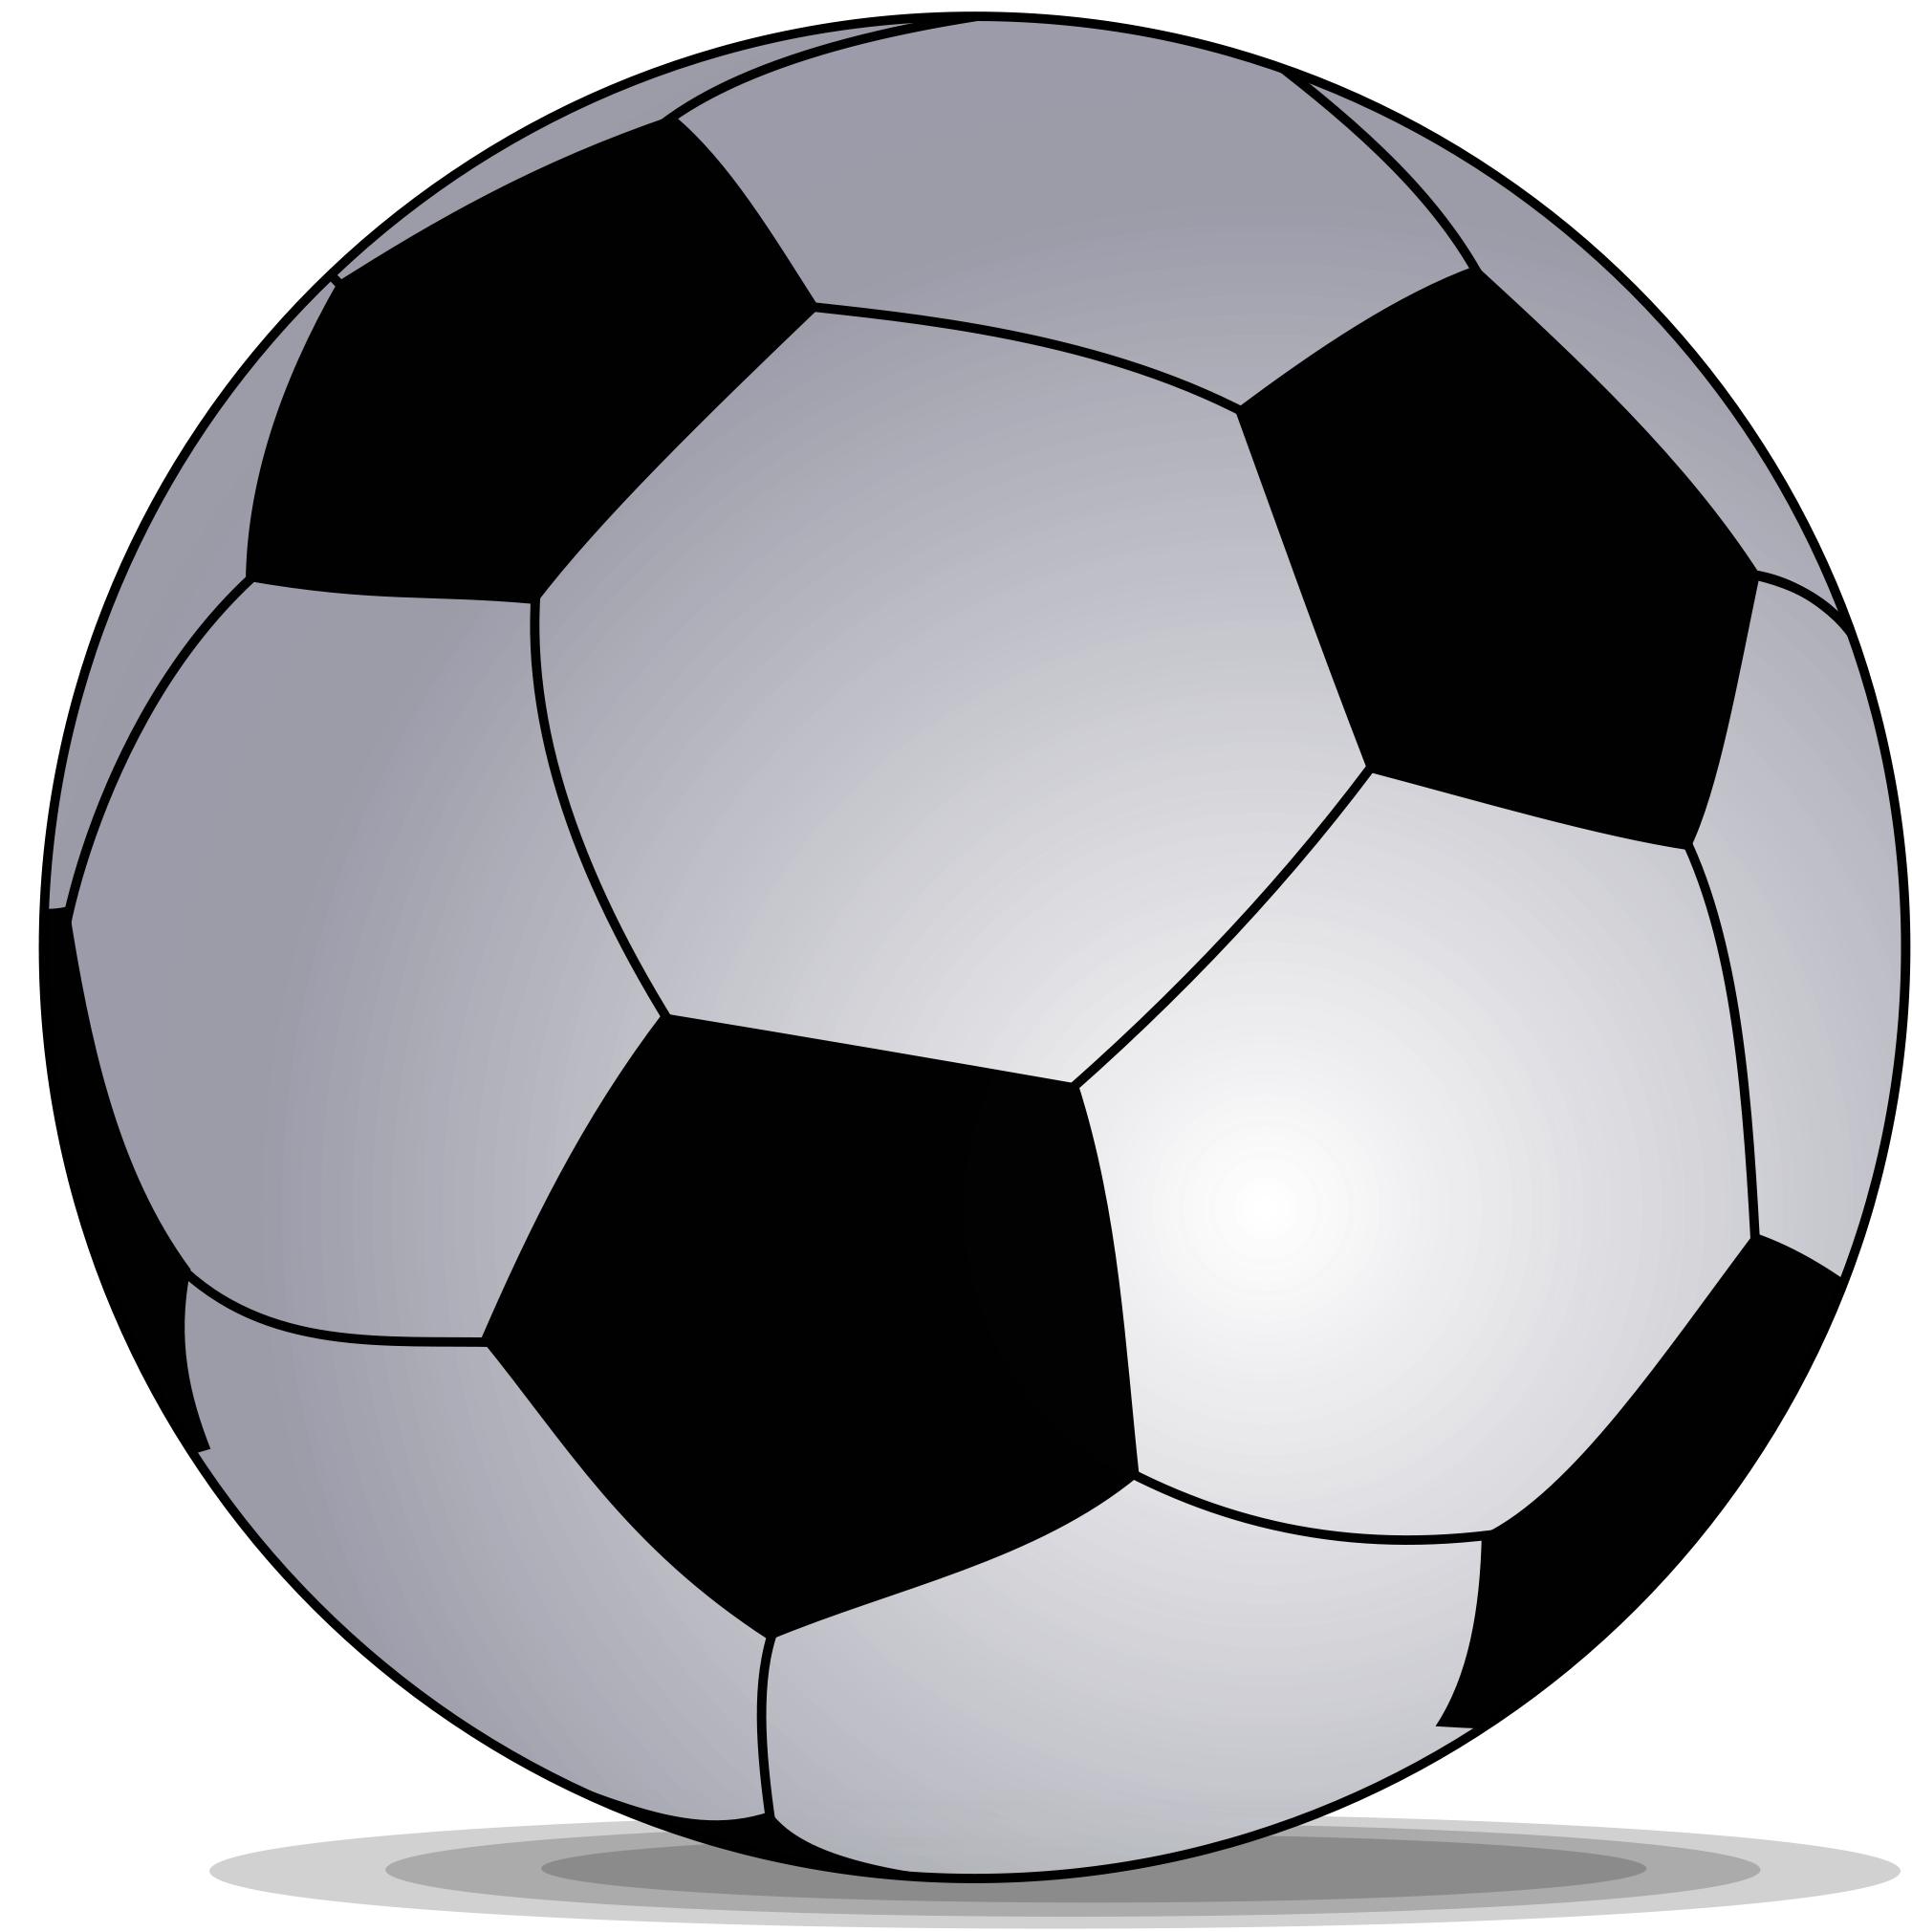 2000x2021 Filesoccerball Mask Transparent Background.svg